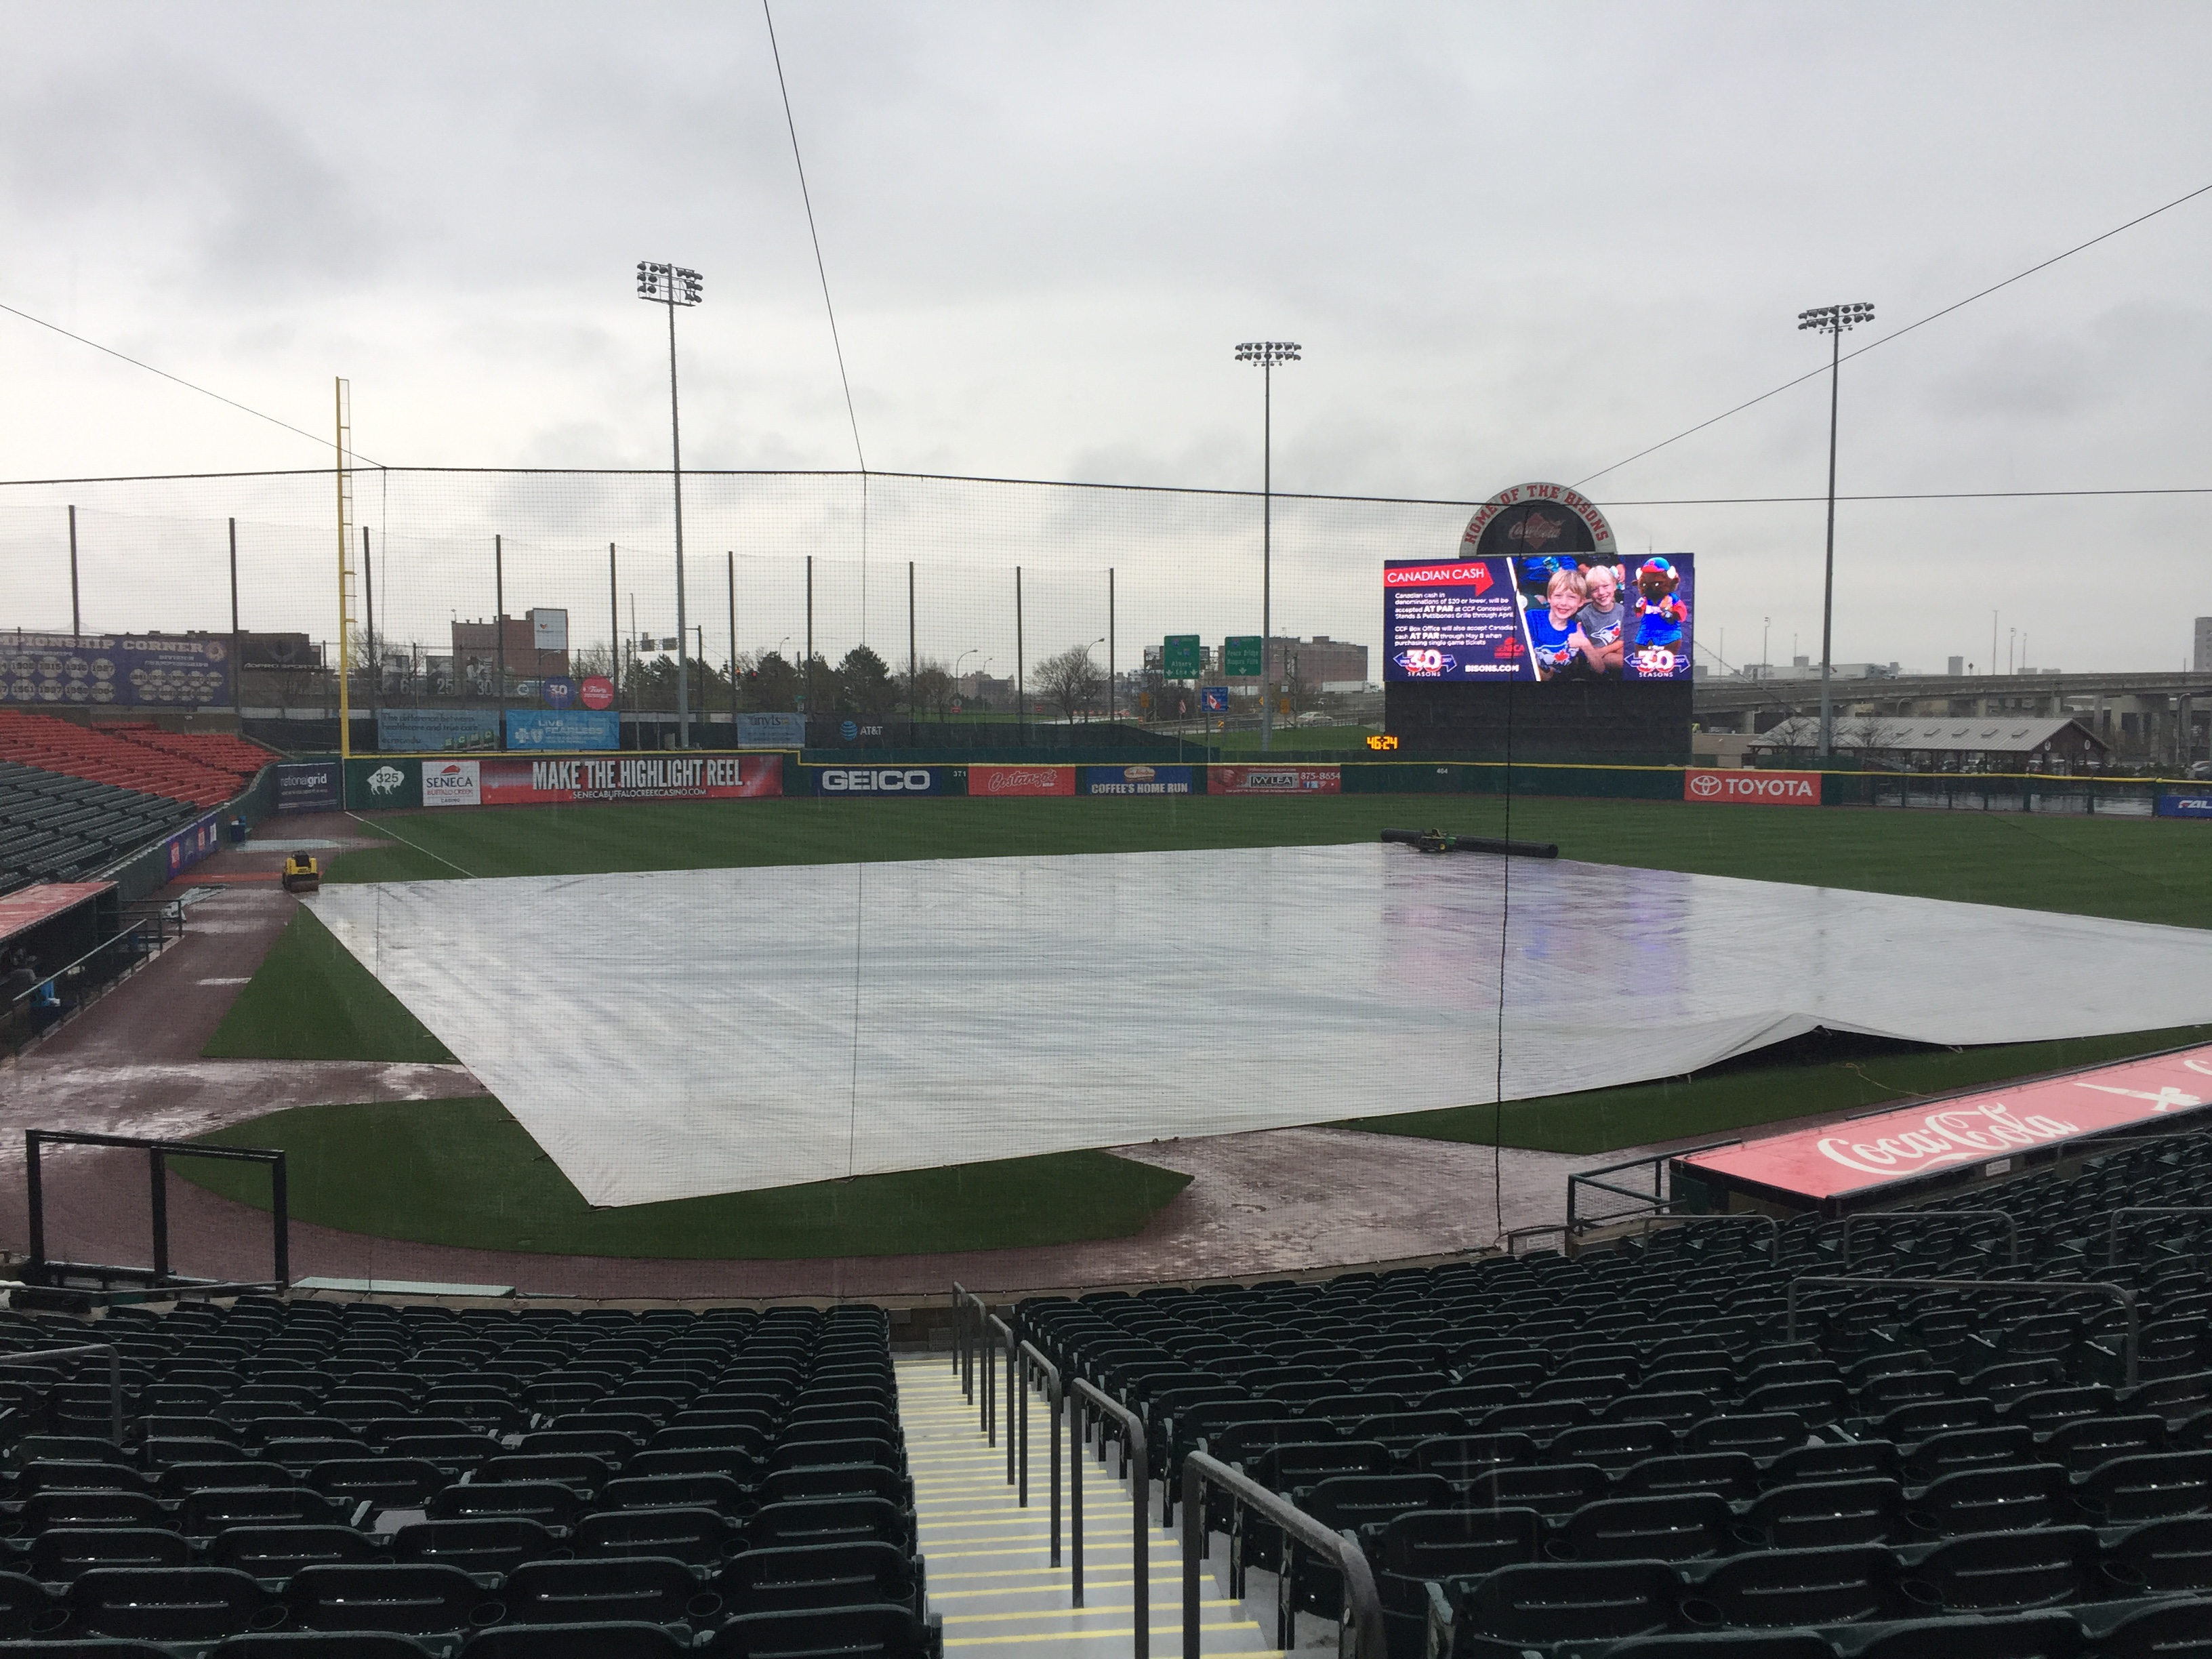 The Bisons had their third rain out of the season.